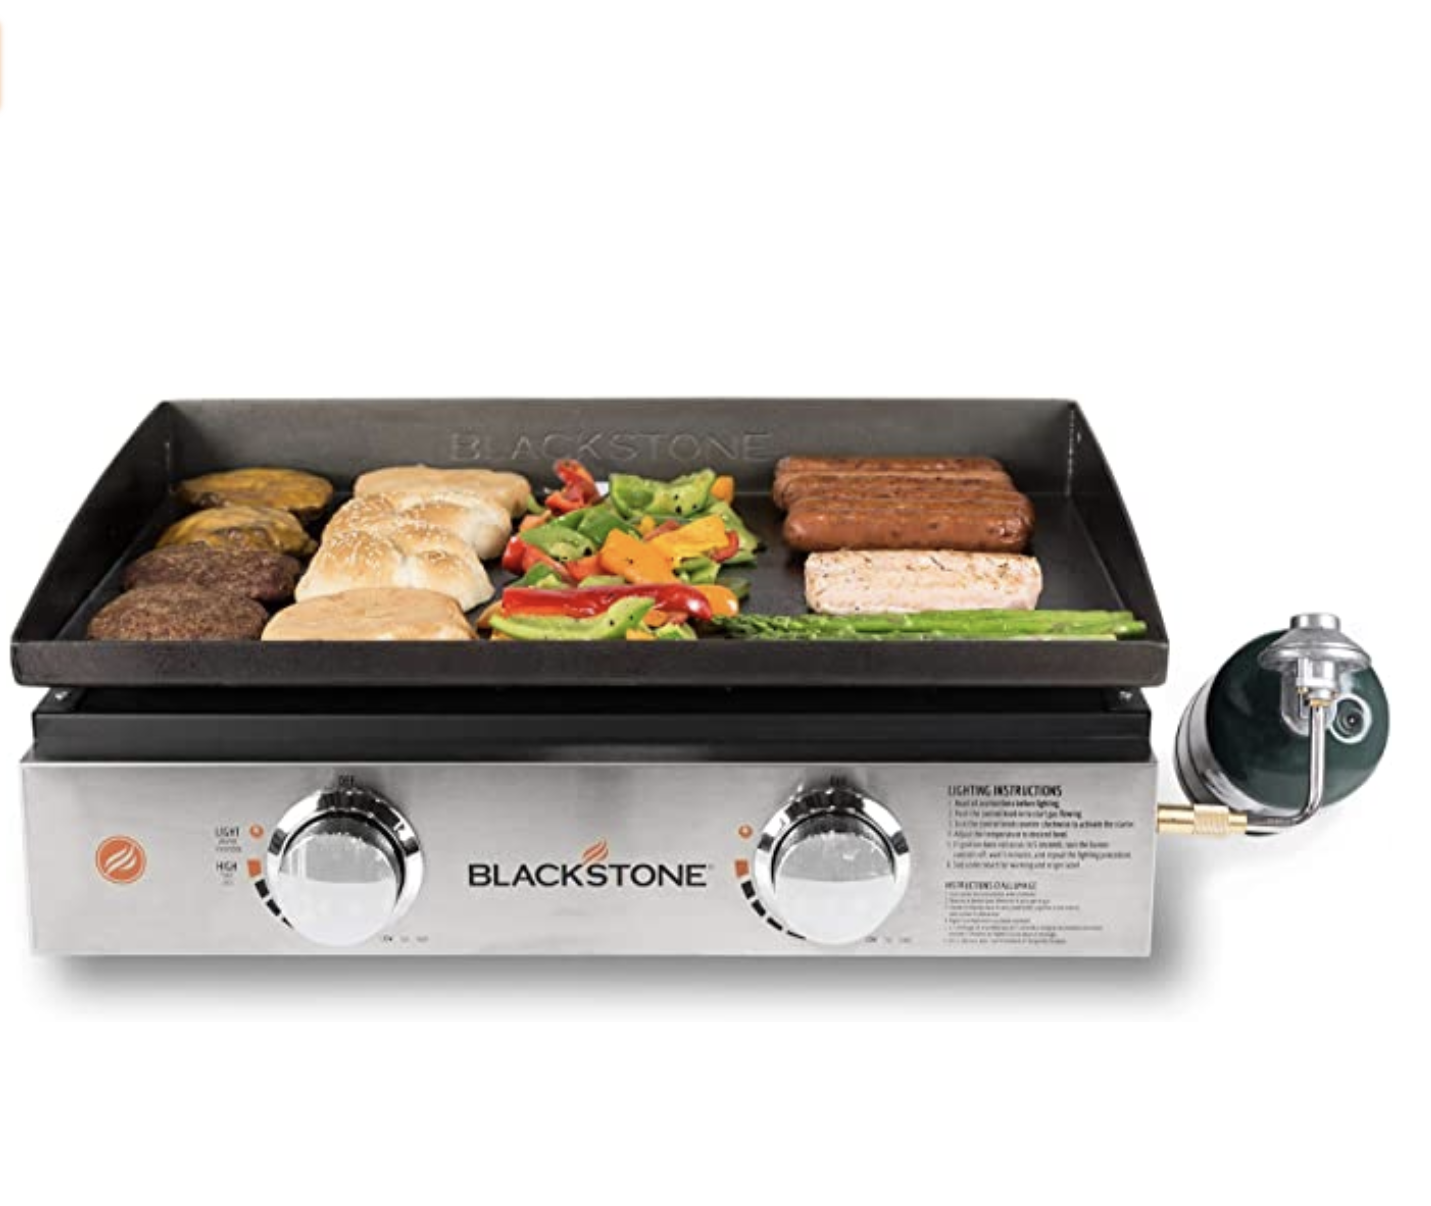 Blackstone 1666 22-Inch Tabletop Griddle